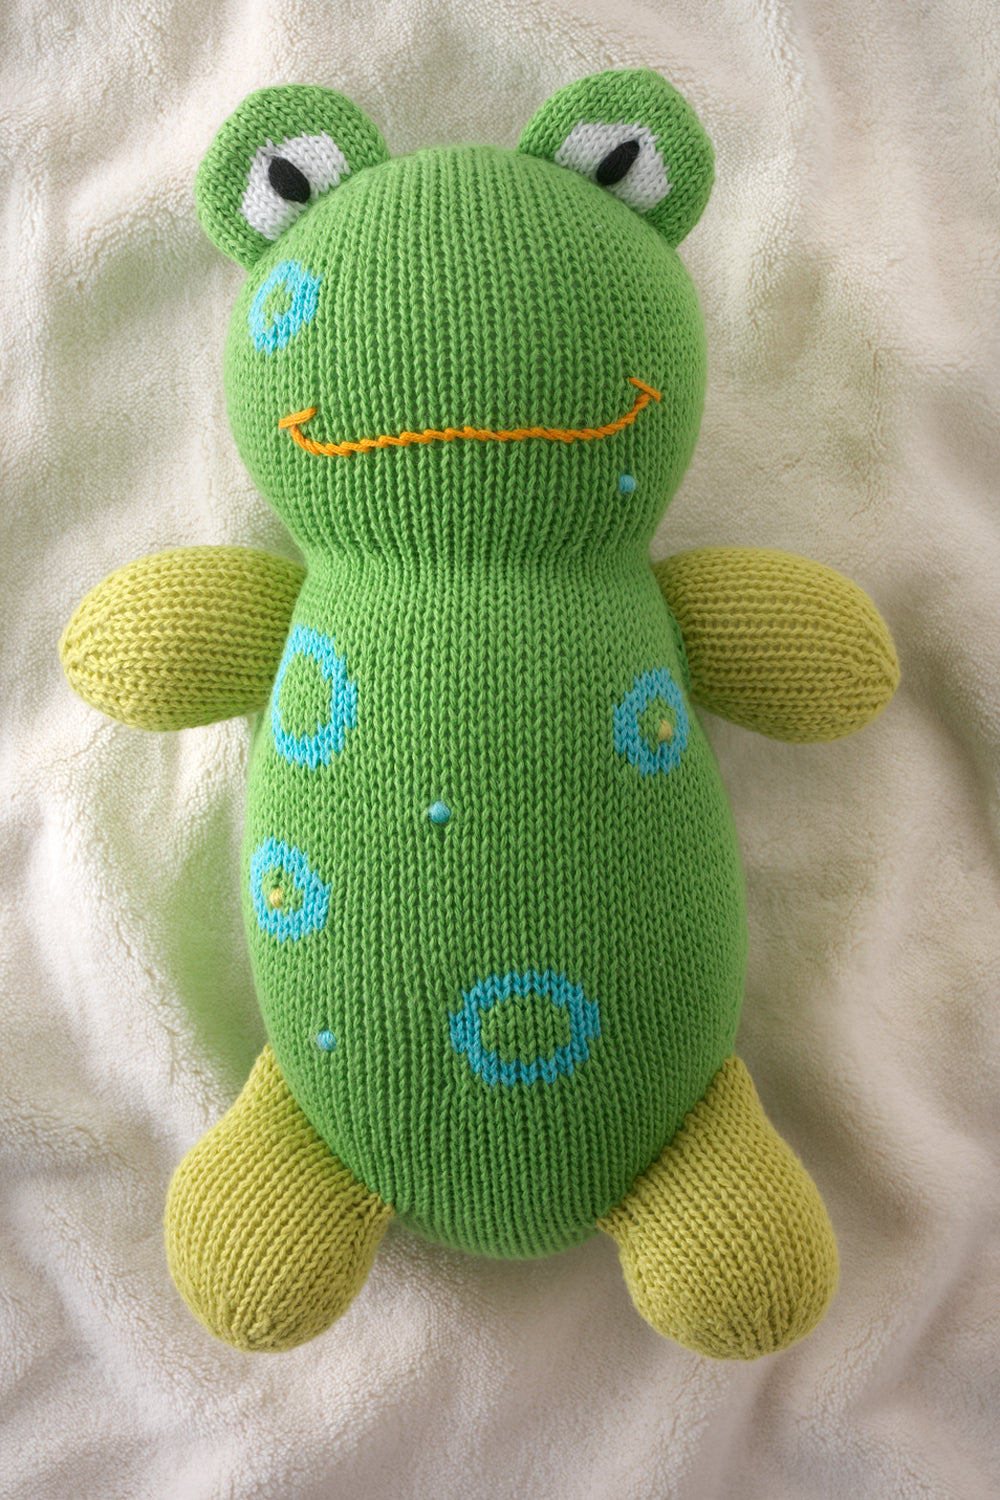 joobles-fair-trade-organic-frog-stuffed-animal-flop-the-frog